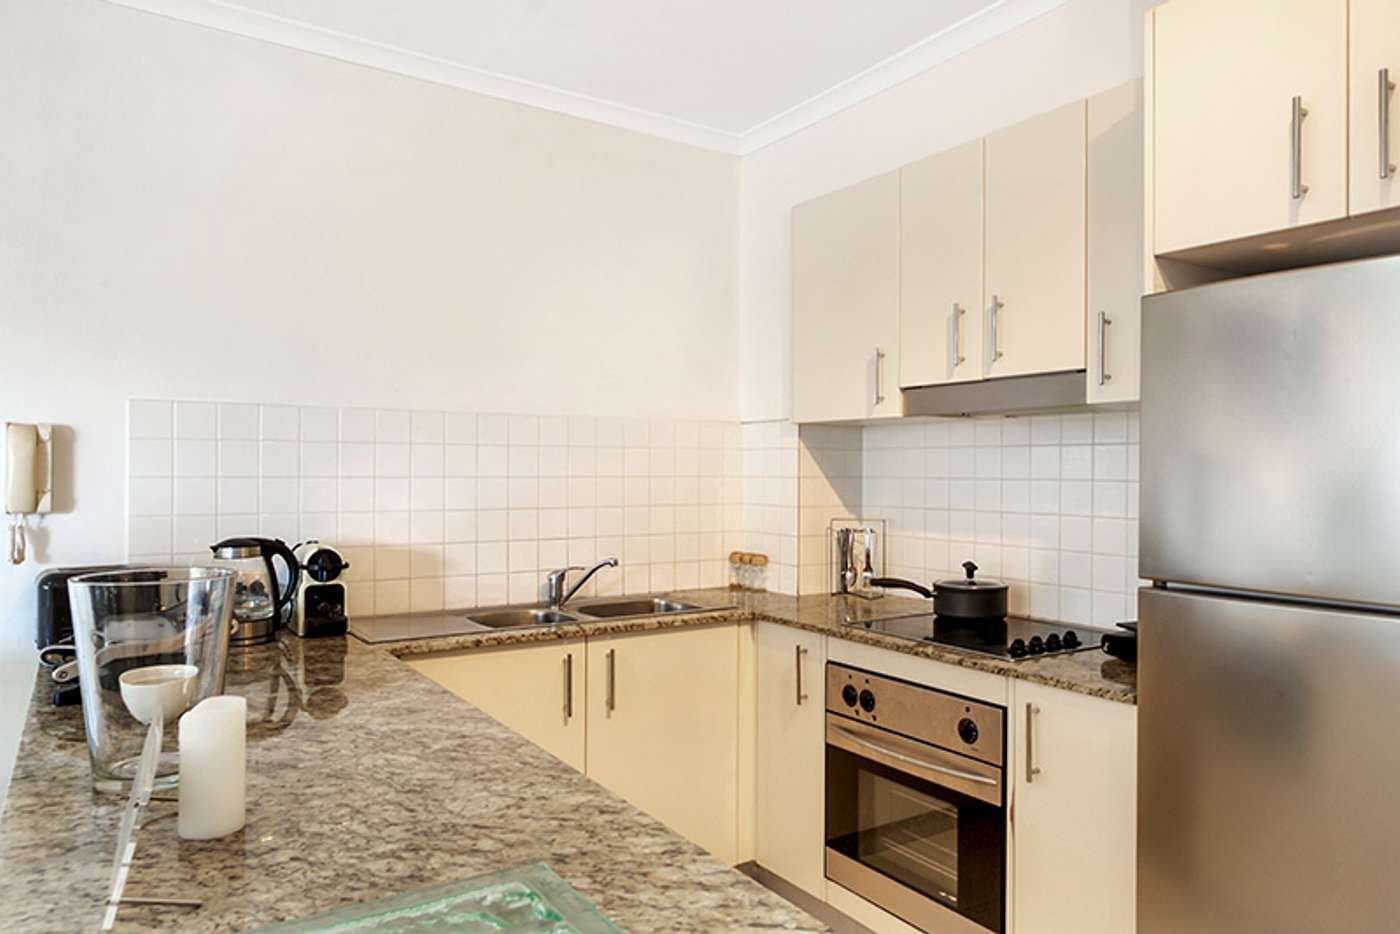 Main view of Homely apartment listing, 37 King St, Sydney NSW 2000